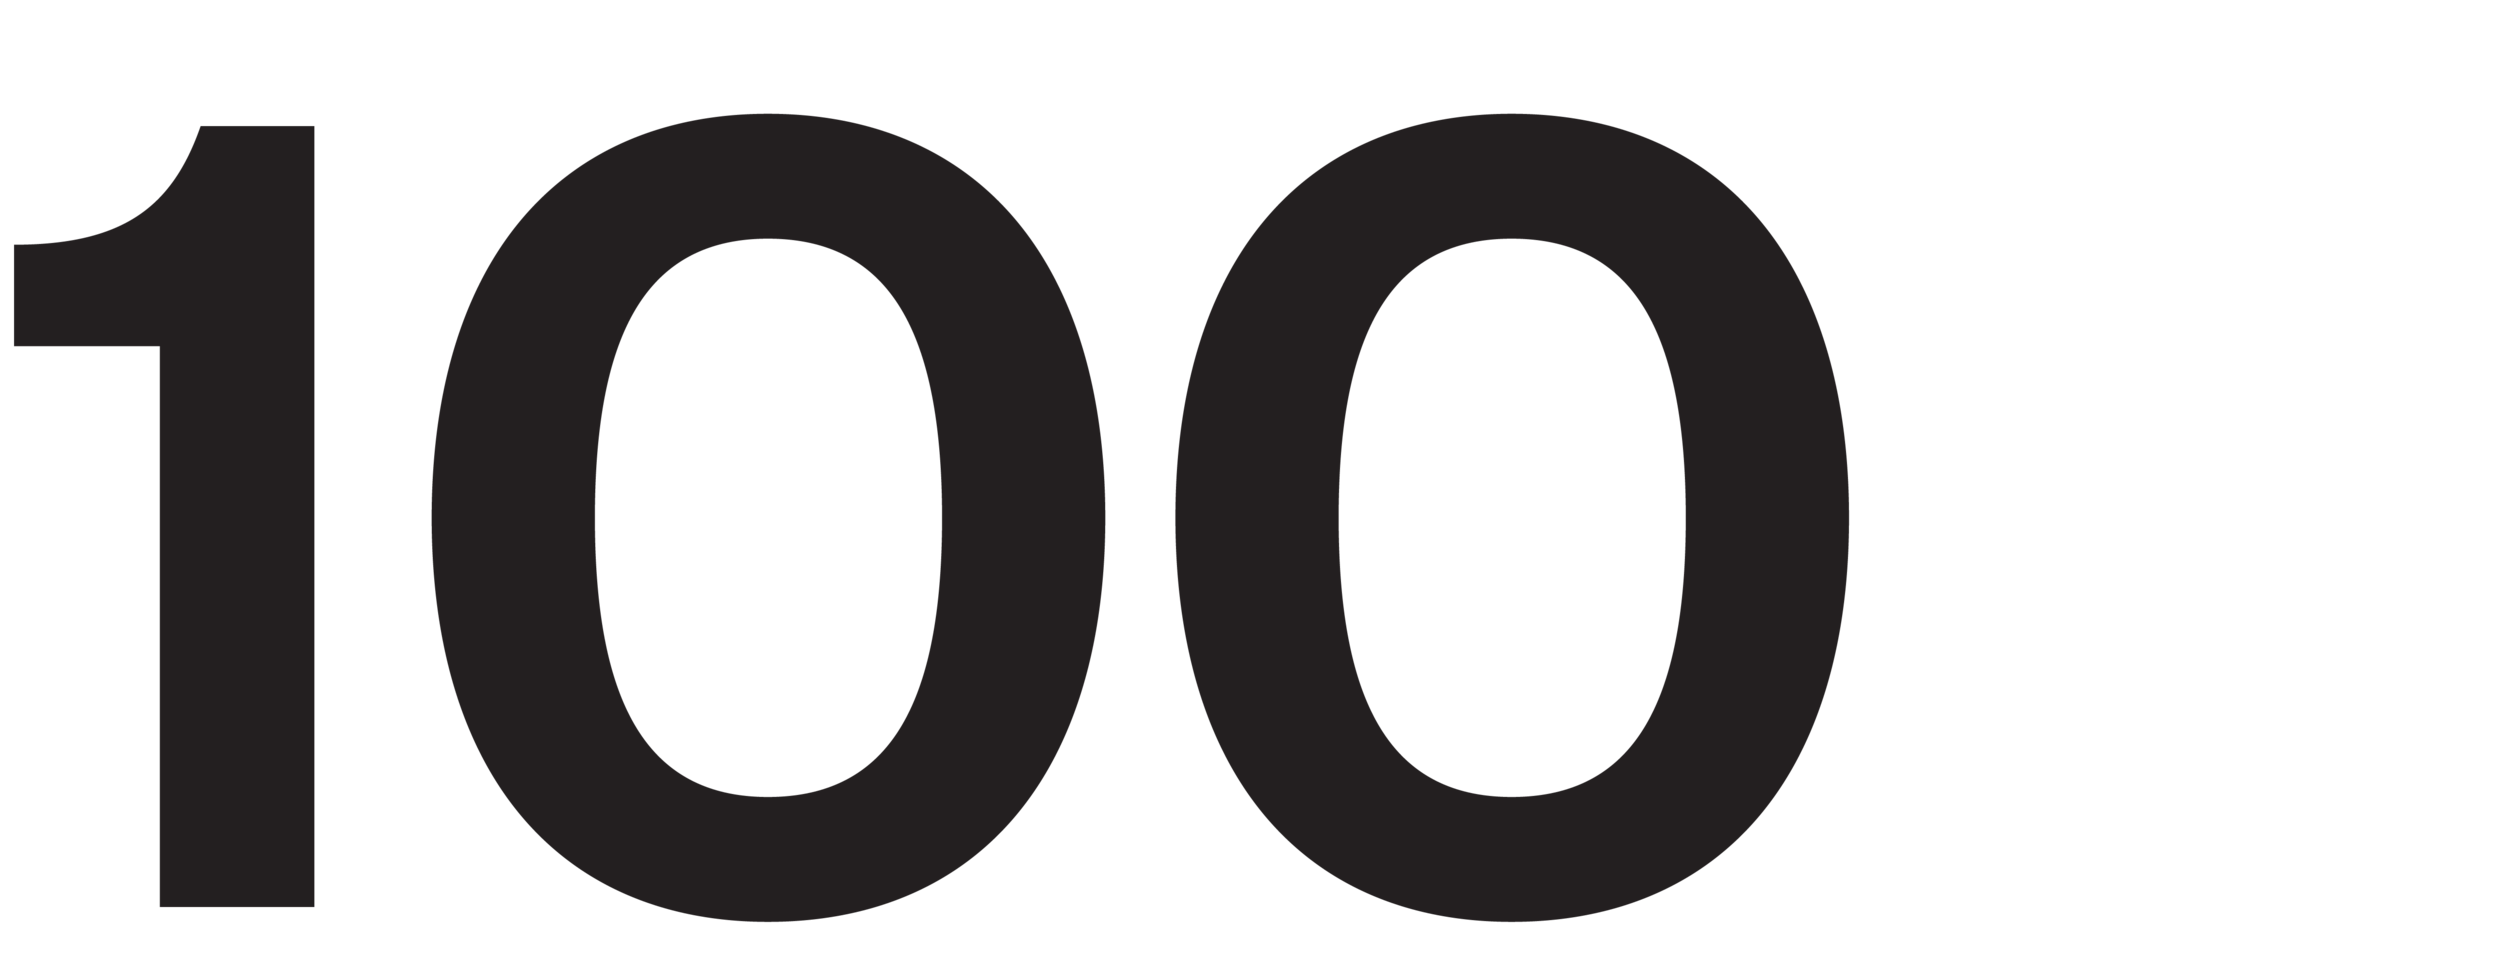 100-01.png